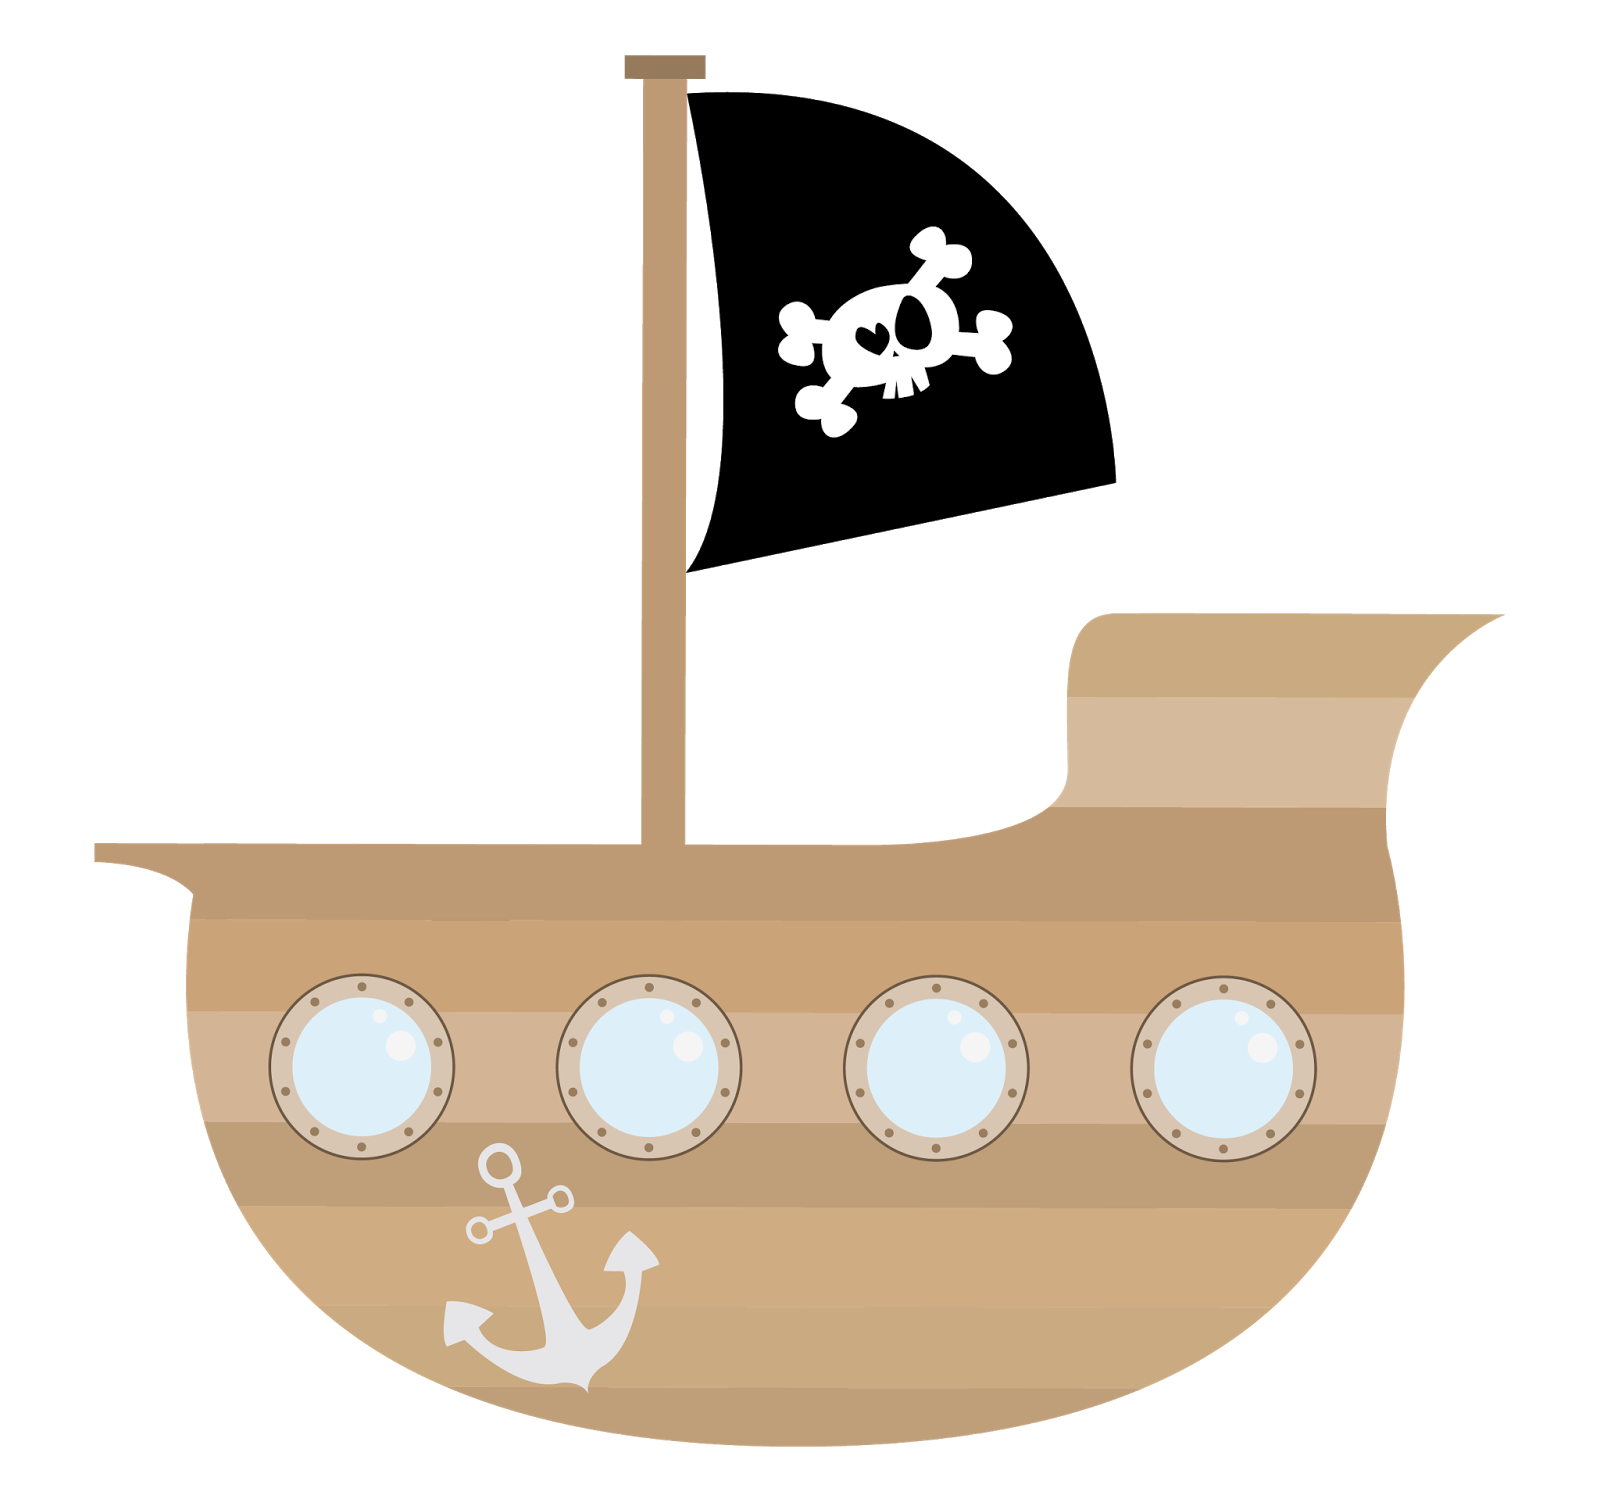 Land clipart kid. Pirate ship story pinterest